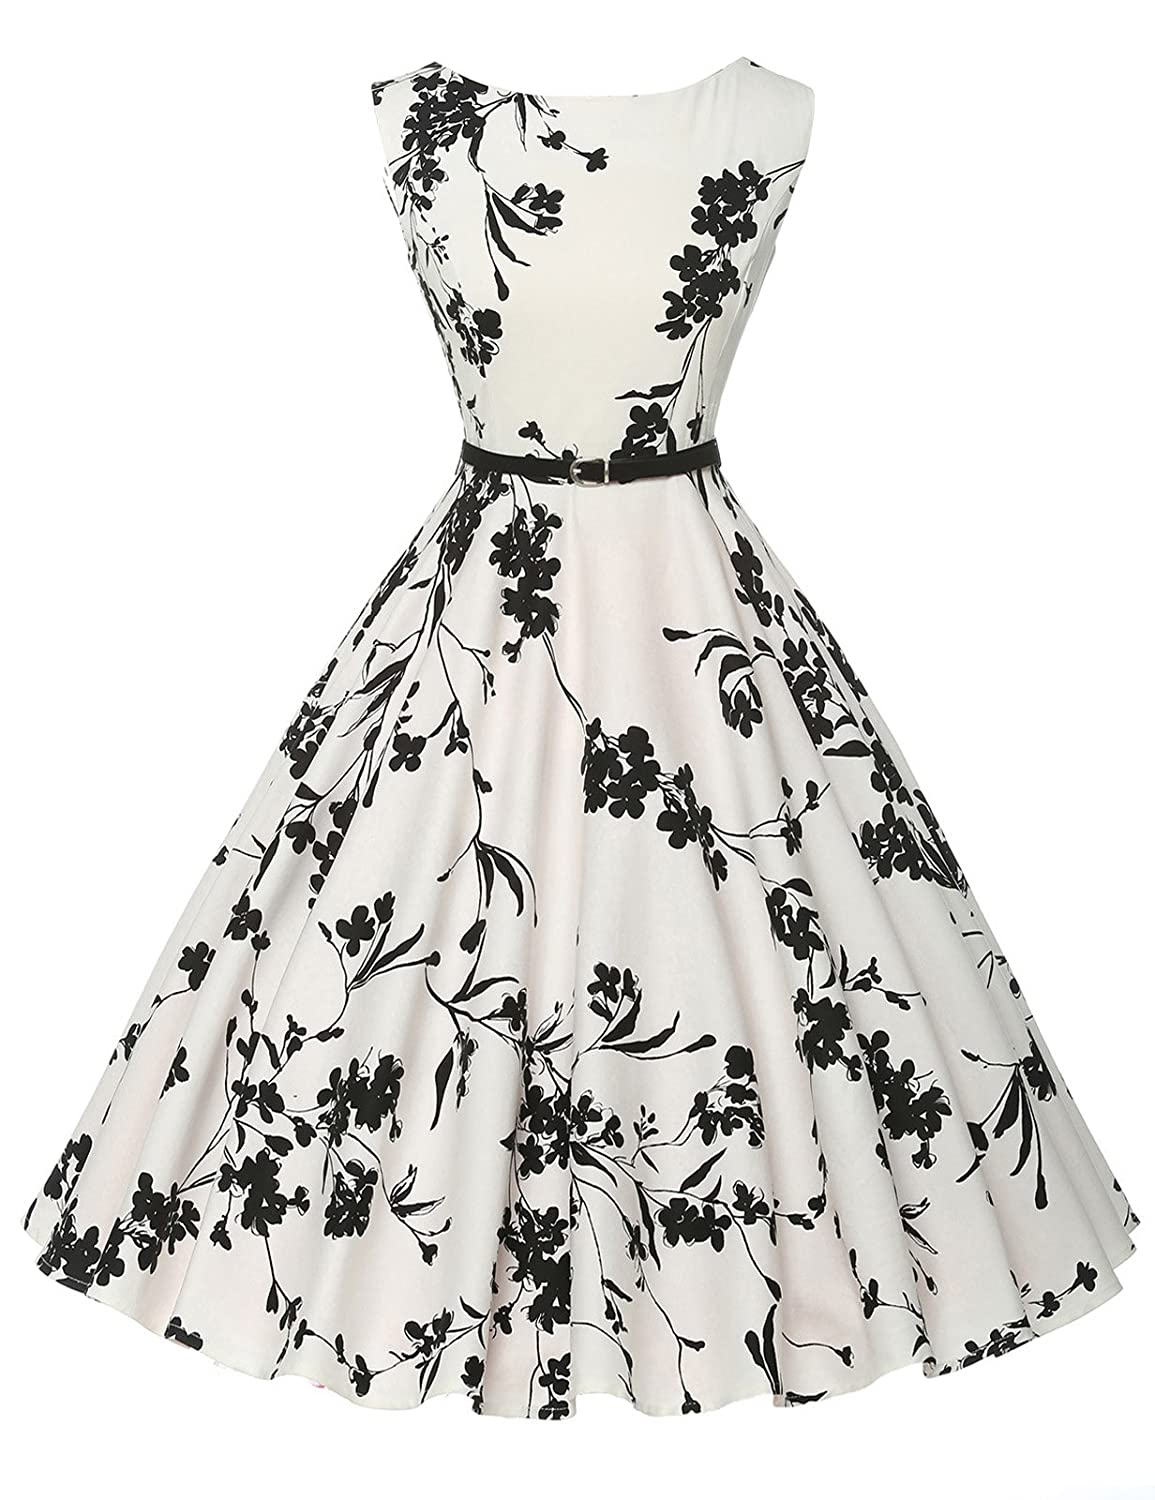 1950s Prom Dresses & Party Dresses BoatNeck Sleeveless Vintage Tea Dress with Belt $30.99 AT vintagedancer.com